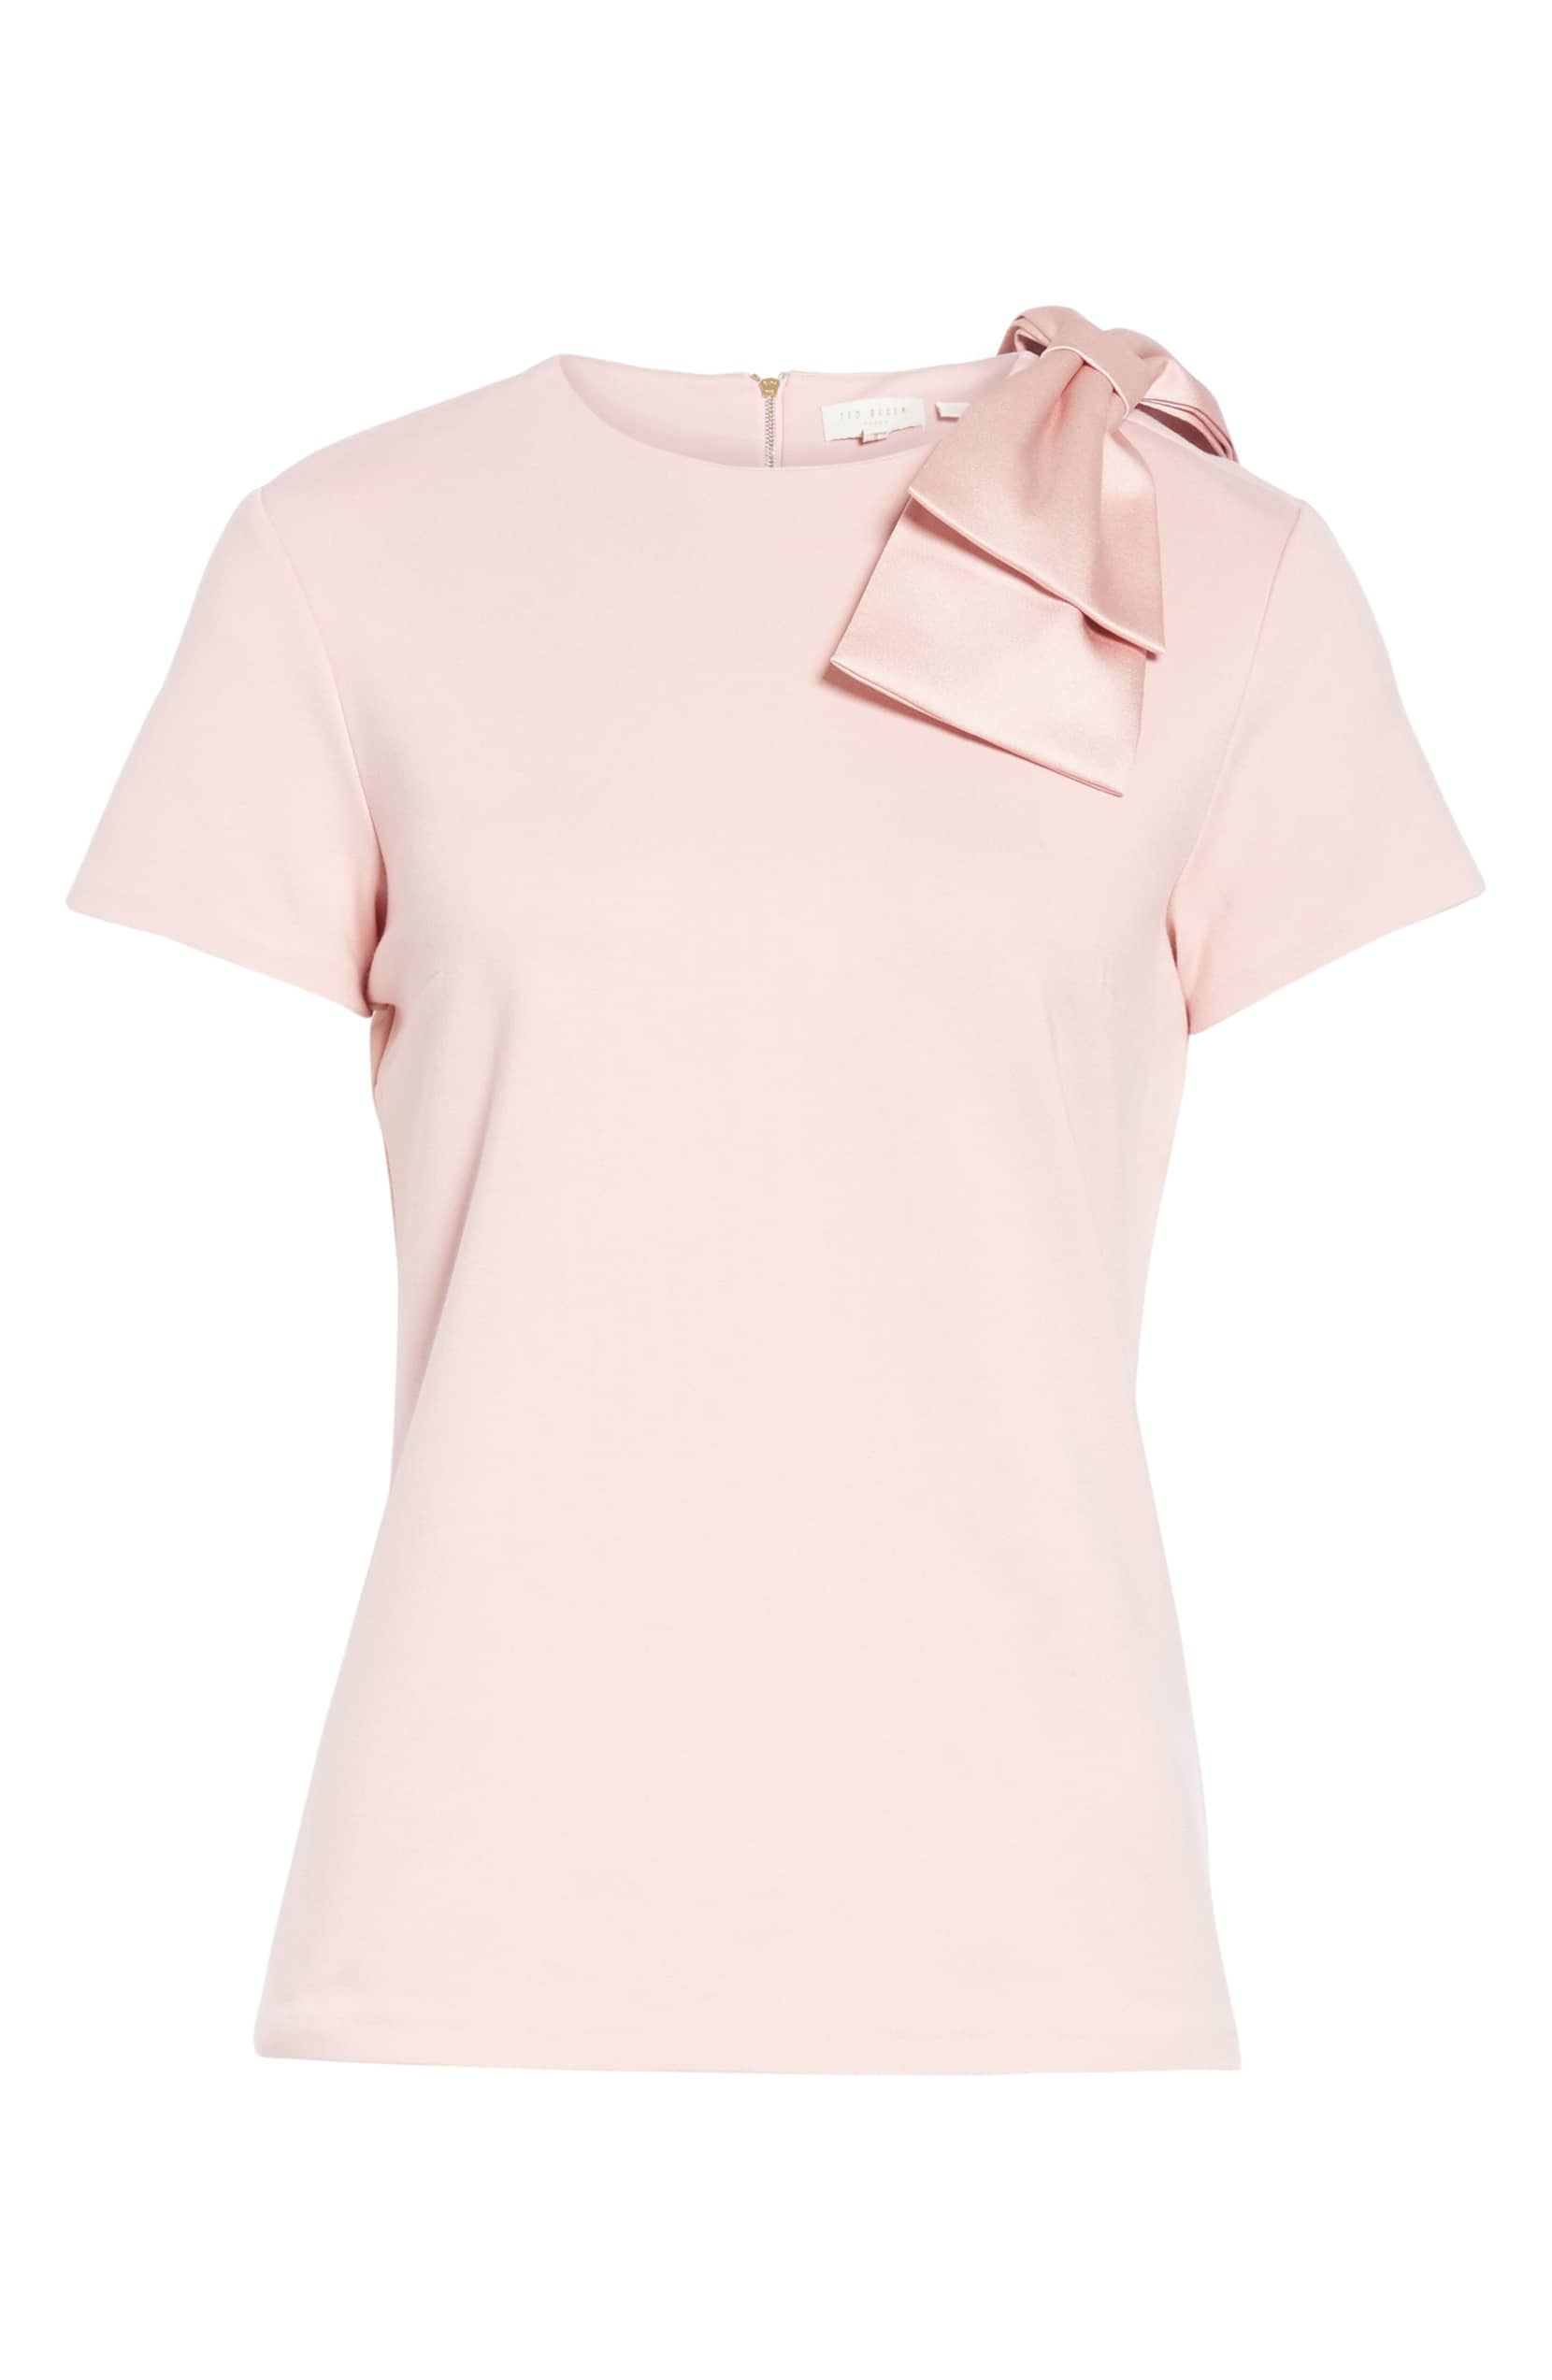 fd3263ac79d331 Ted Baker London Joyous Bow Shoulder Top - Dusky Pink